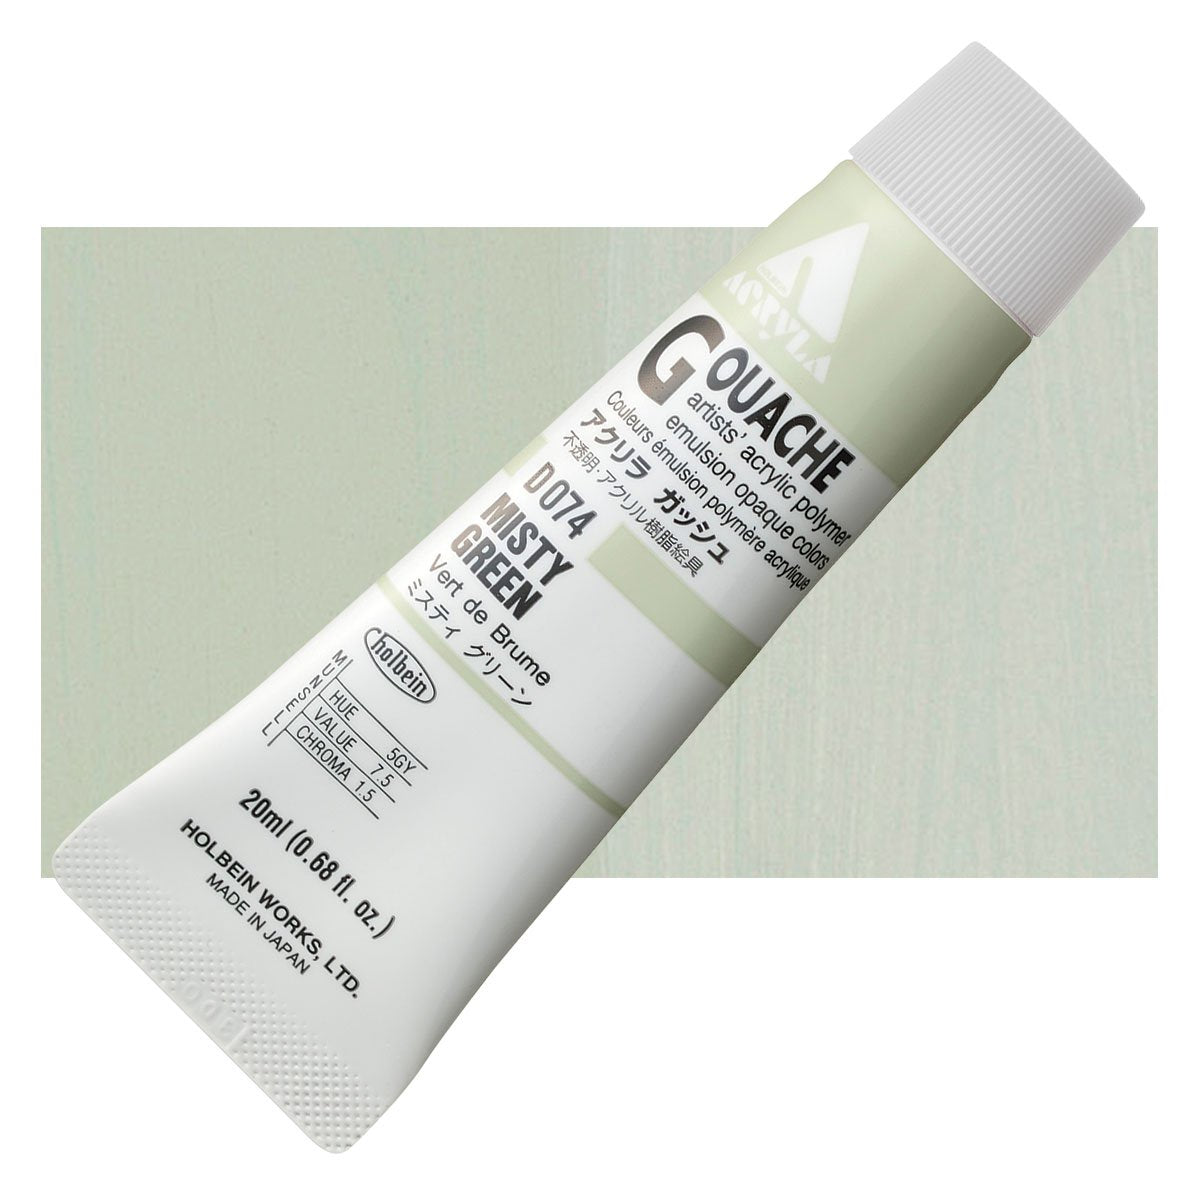 Holbein Acryla Gouache 20ml Tubes - Misty Green by Holbein - K. A. Artist Shop